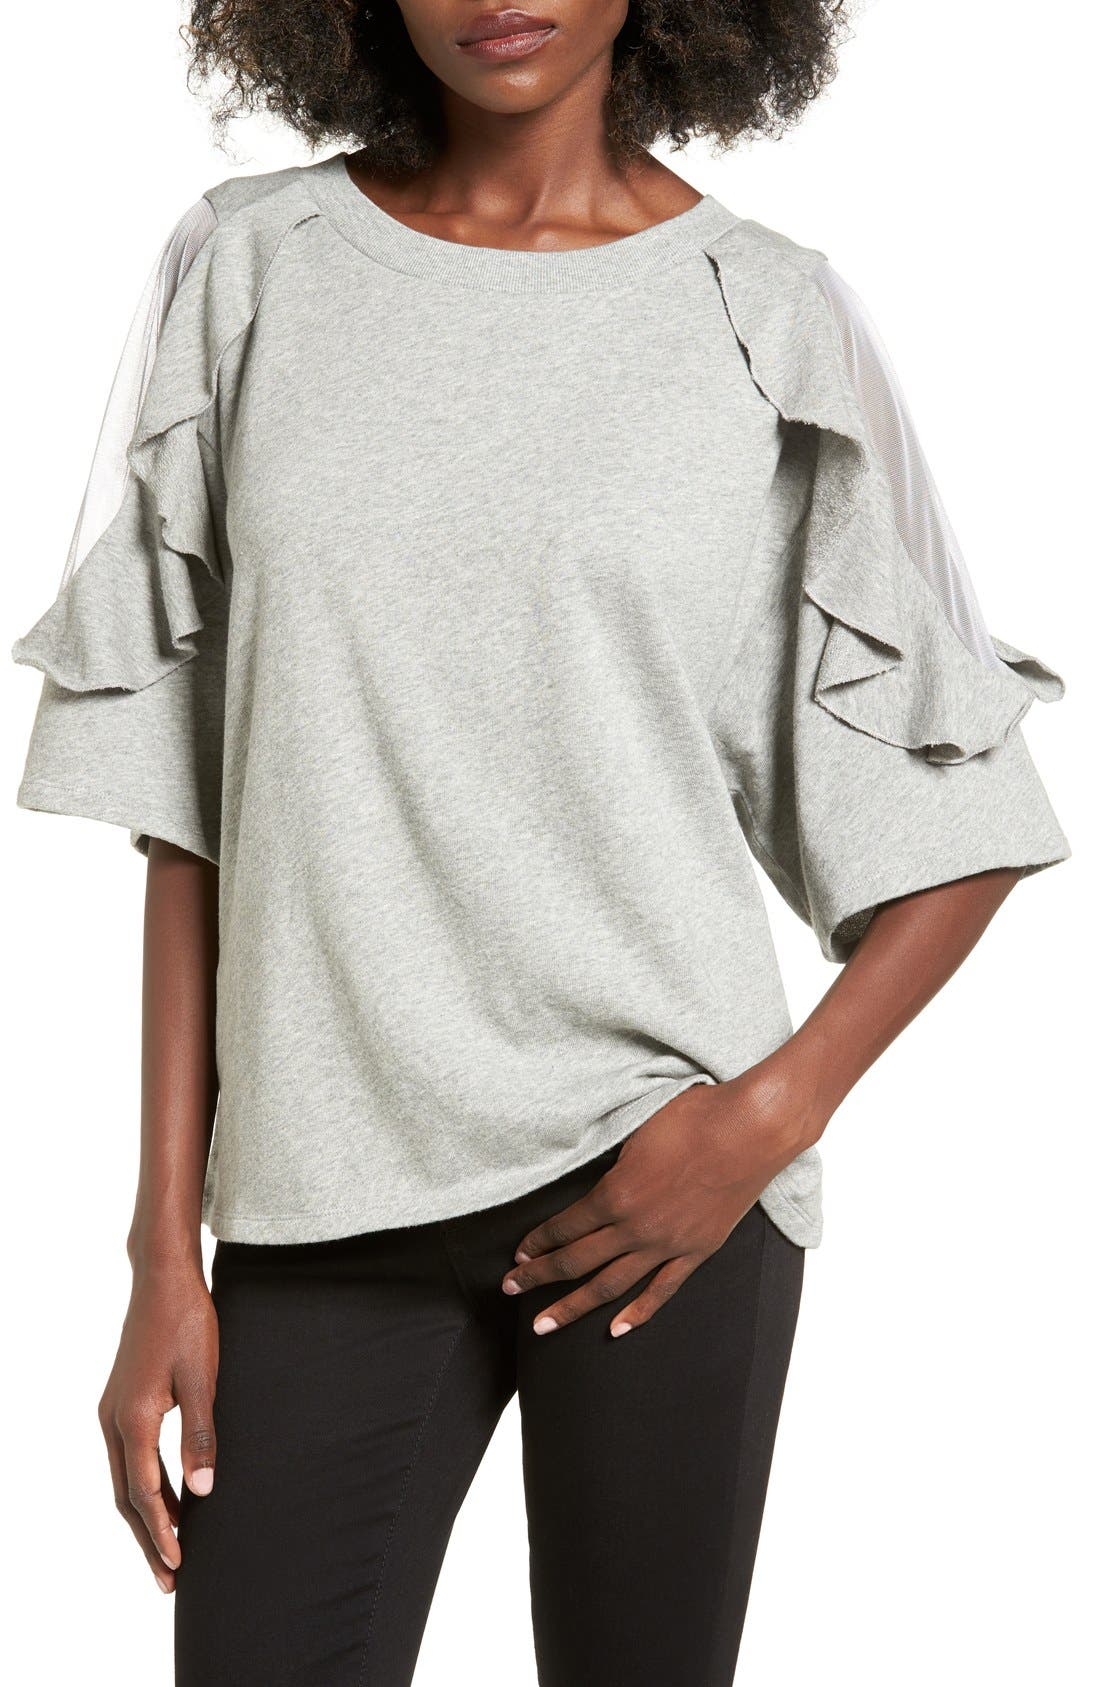 Alternate Image 1 Selected - BP. Ruffle Sleeve Sweatshirt